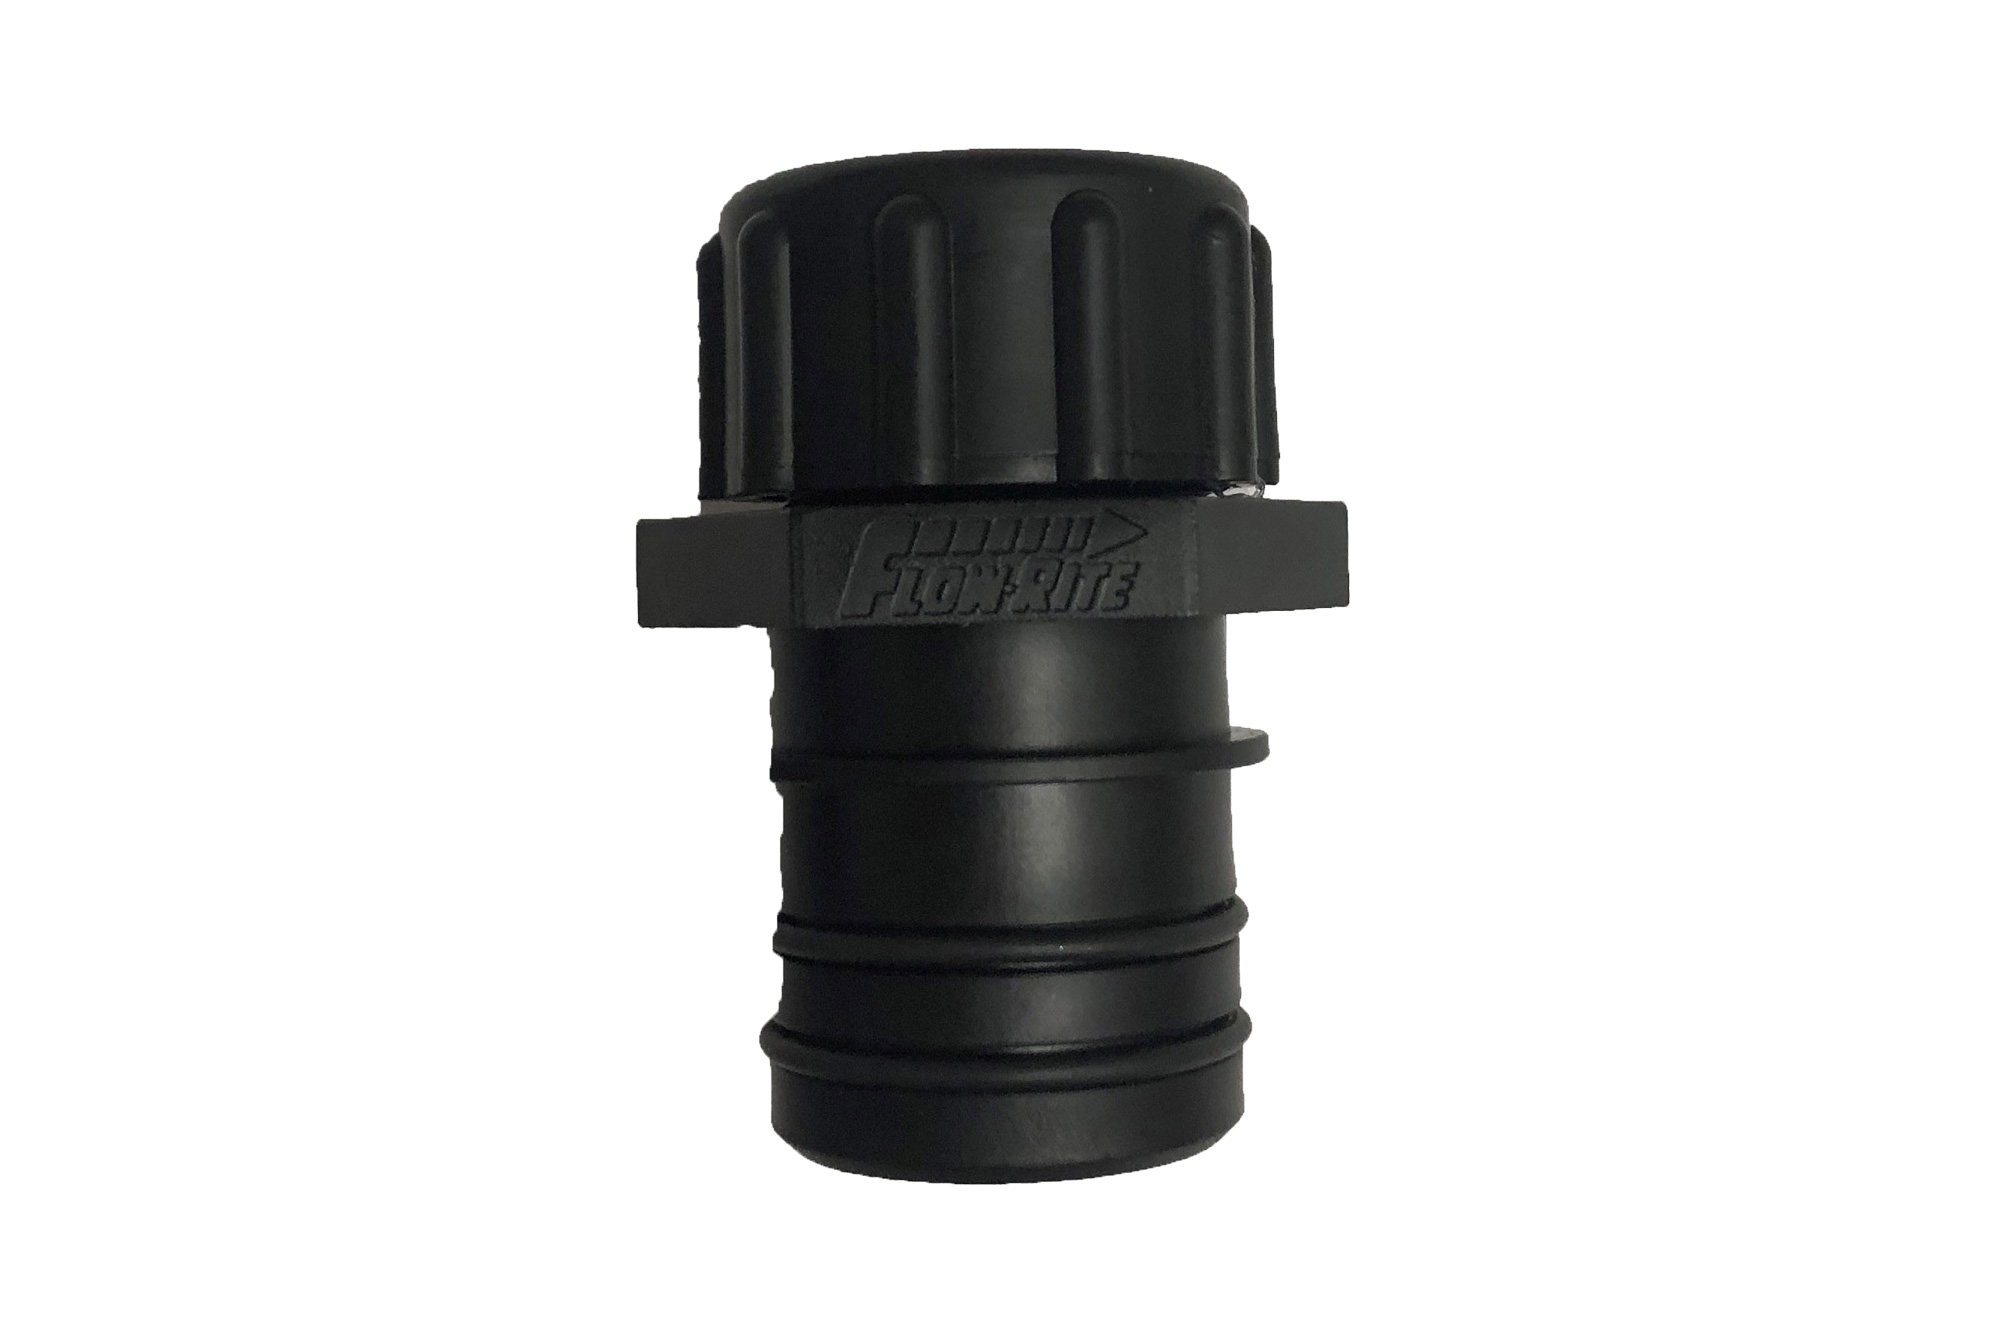 "W746/ FLOW-RITE 1 1/8"" ELBOW QUICK CONNECT SOCKET FATSAC 2018"